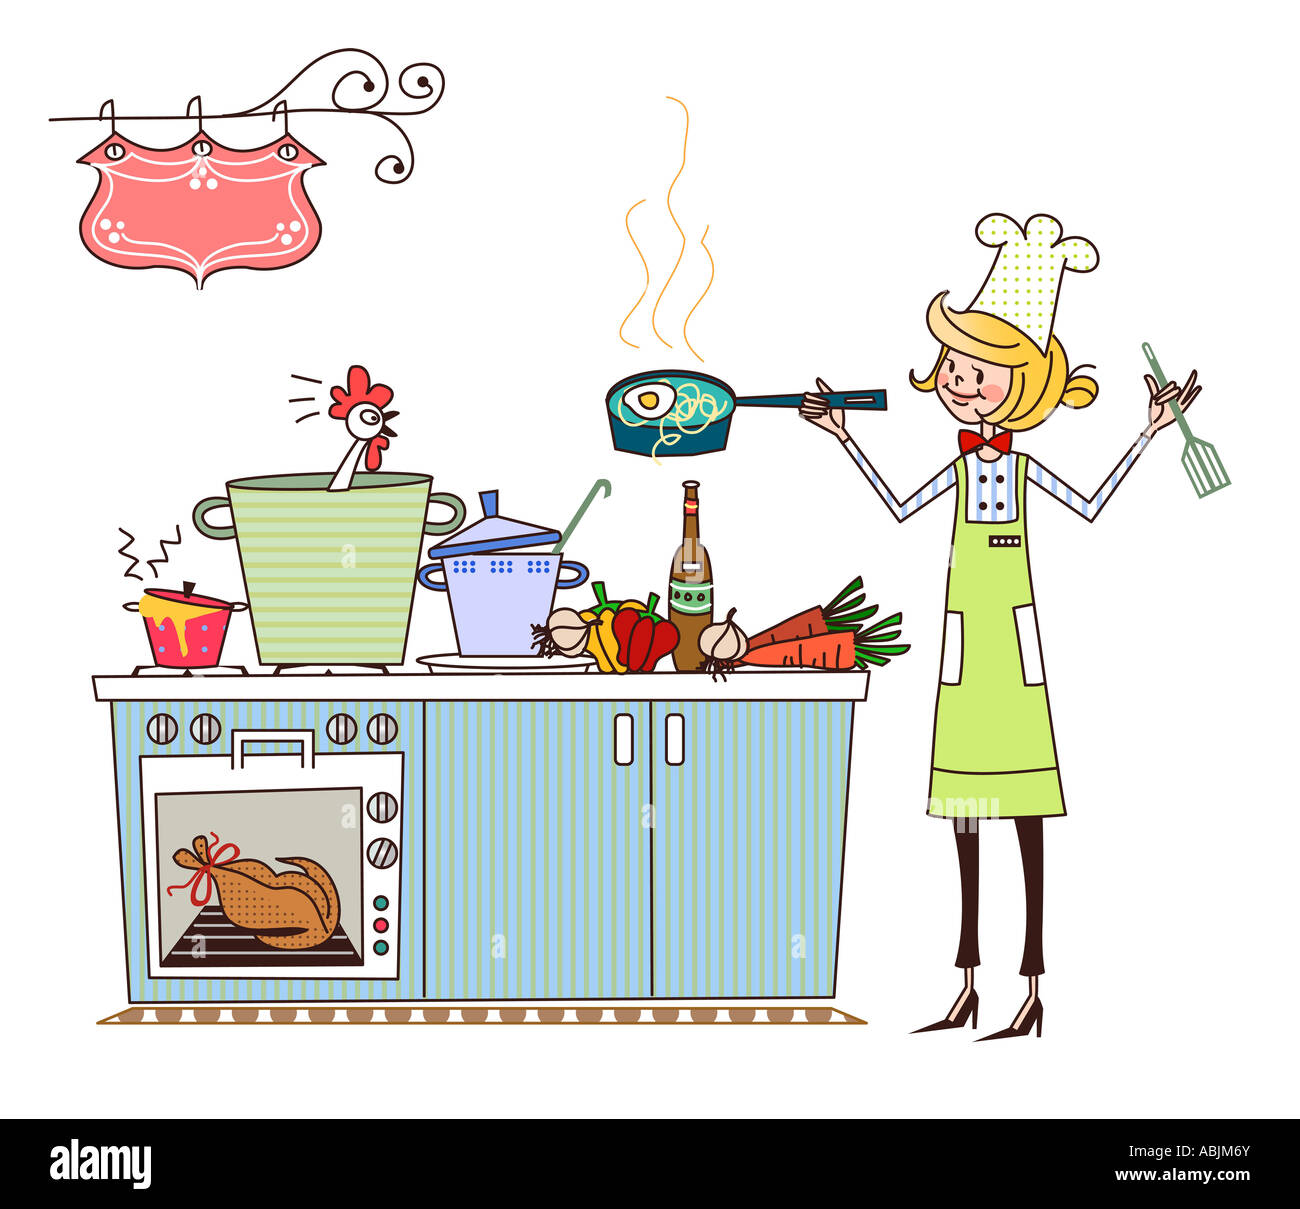 Cooking Clipart Stock Photos & Cooking Clipart Stock Images - Alamy